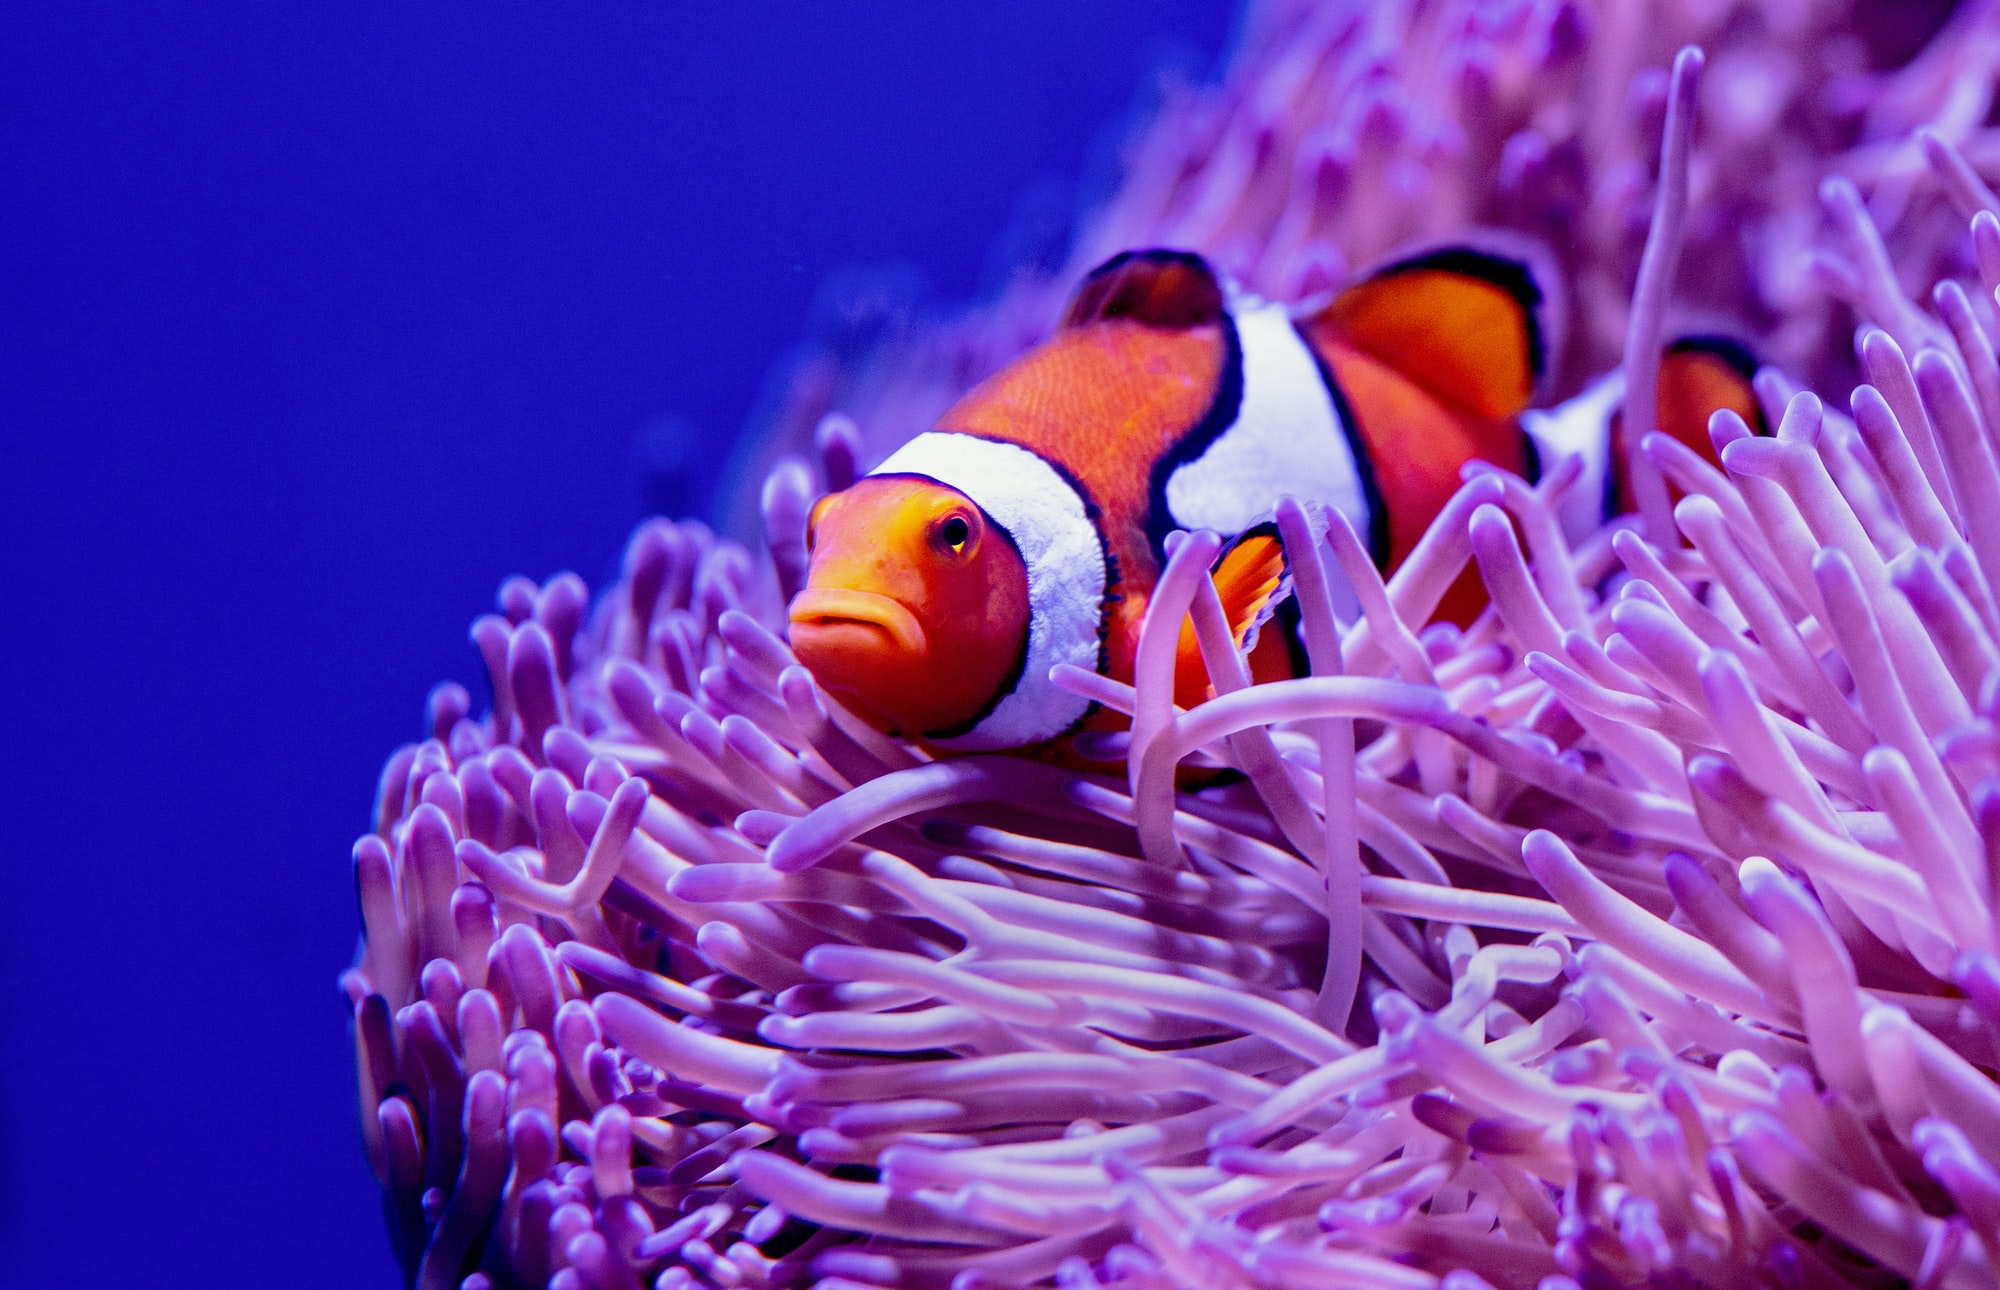 Portrait of a Clown Anemonefish at the Cairns Aquarium in Australia.